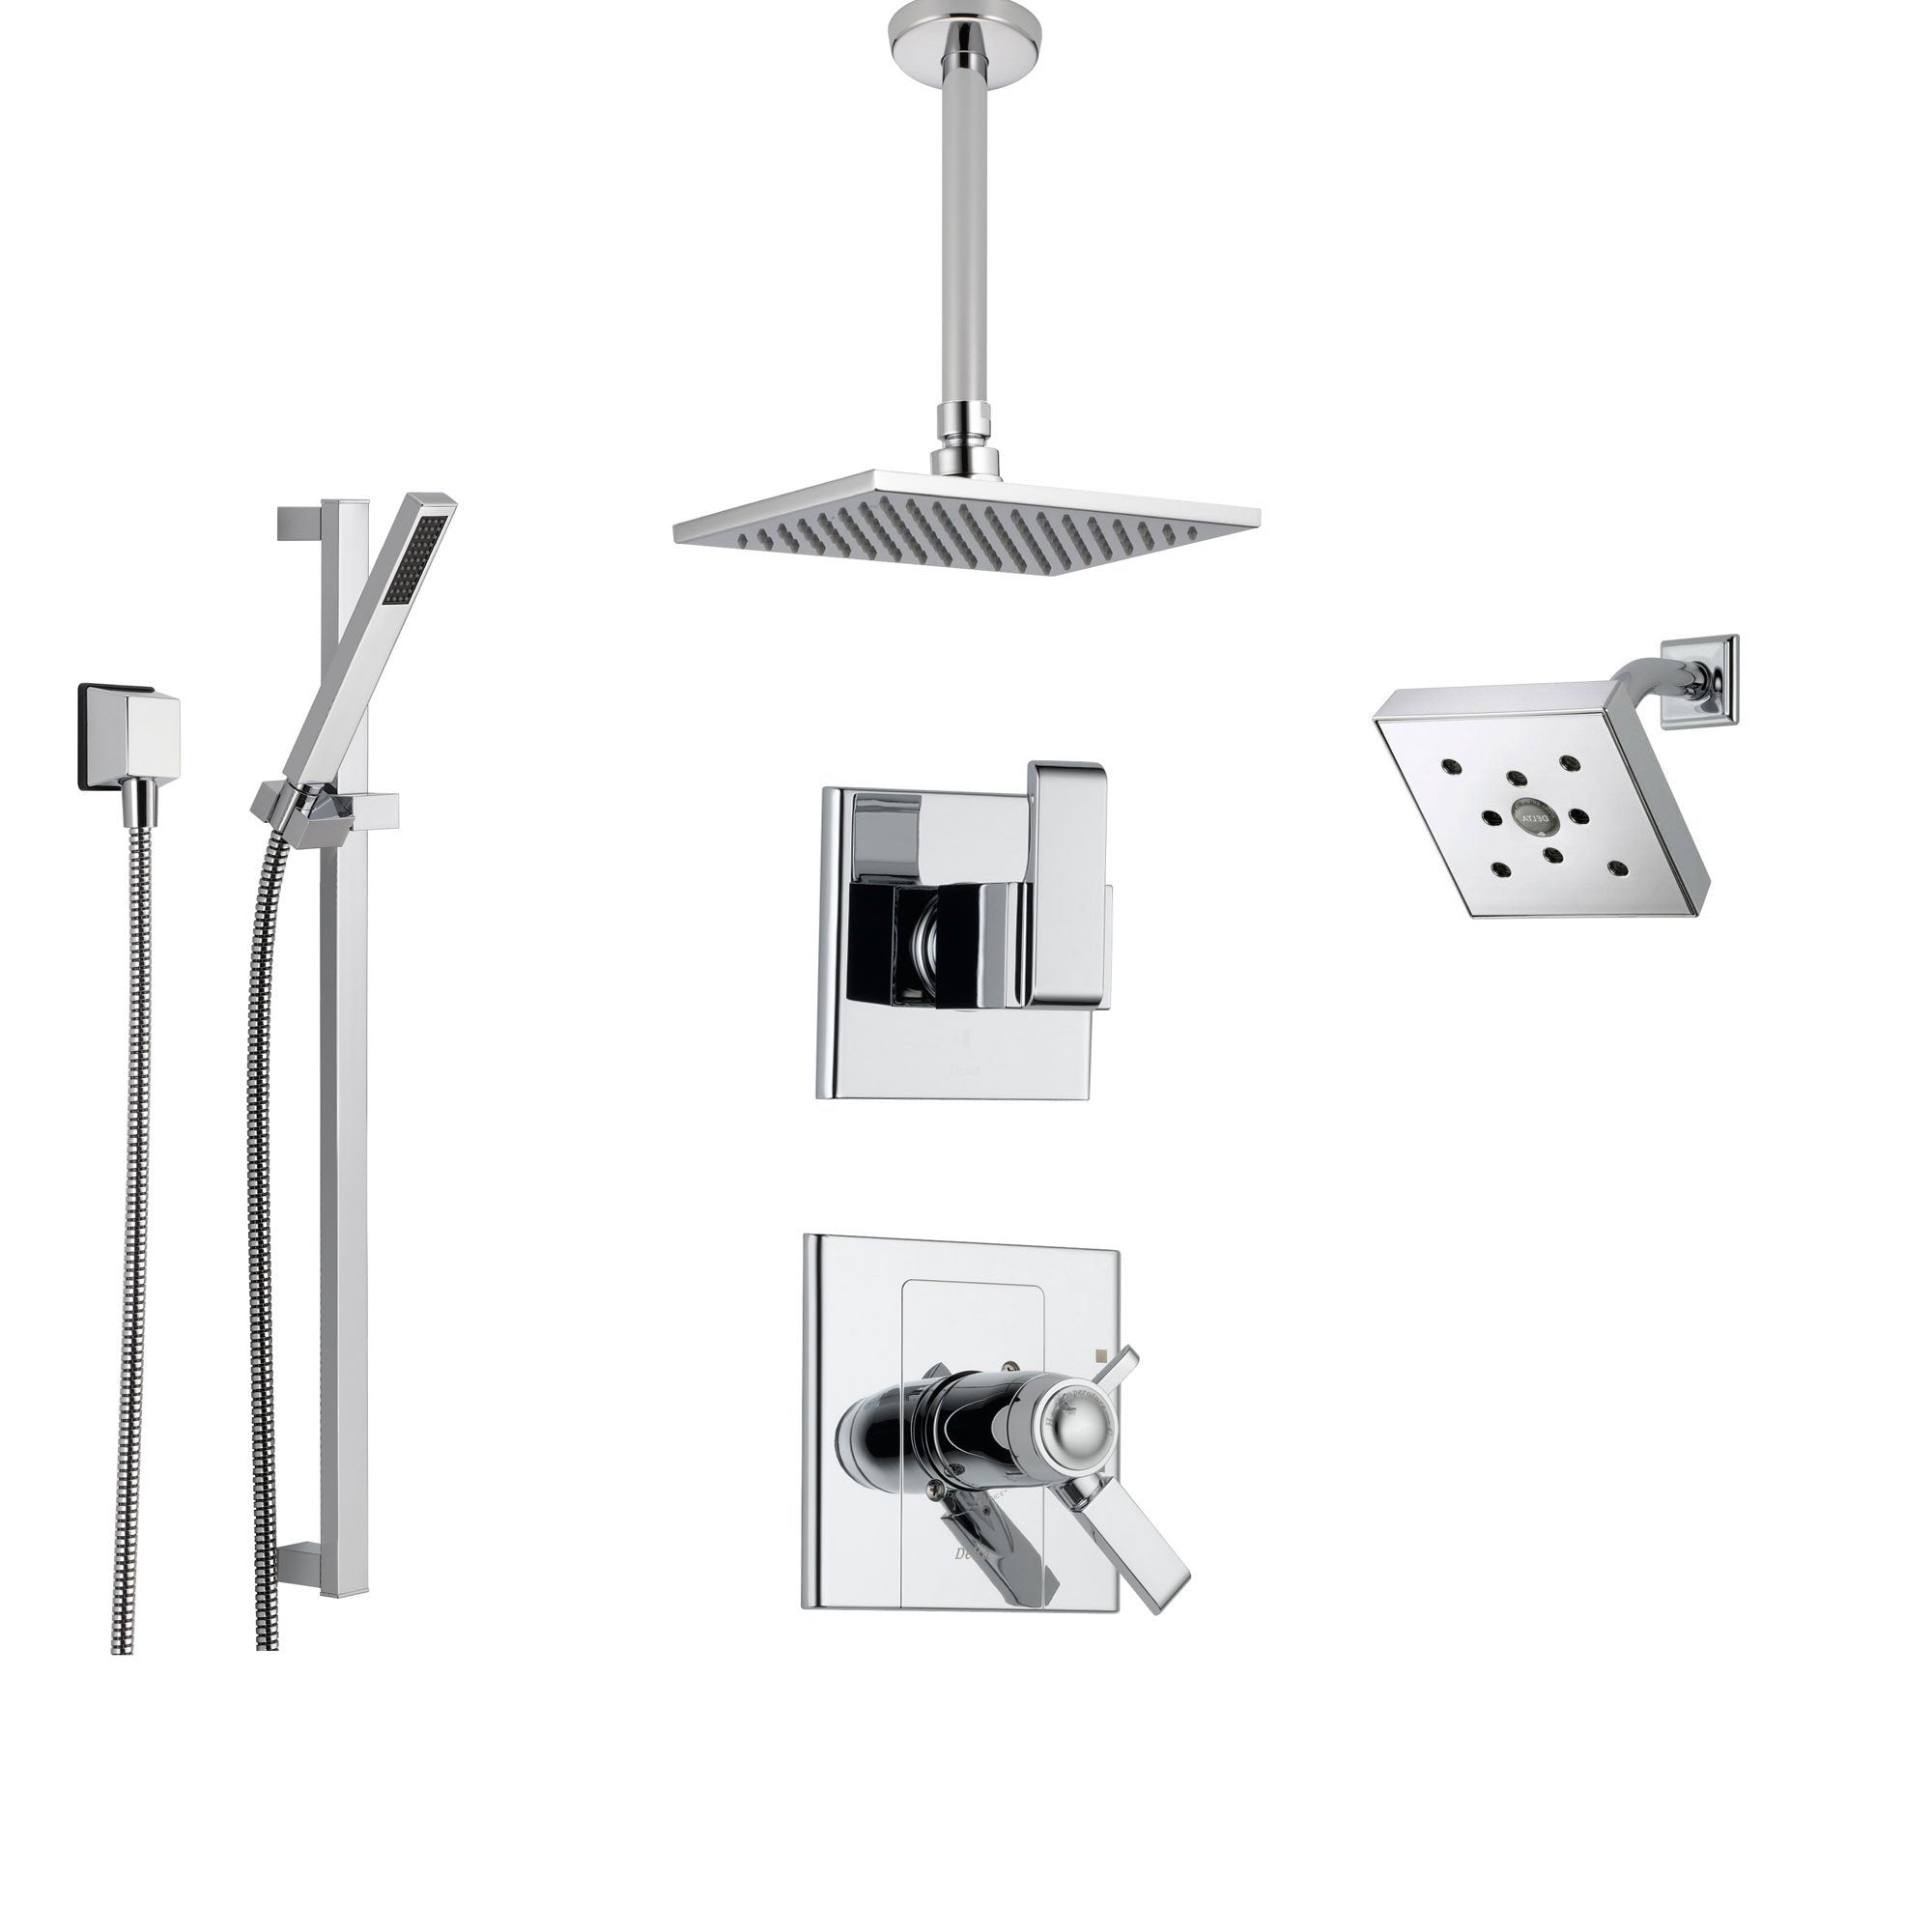 Delta Arzo Chrome Shower System with Thermostatic Shower Handle, 6-setting Diverter, Modern Square Shower Head, Handheld Shower, and Wall Mount Showerhead SS17T8691